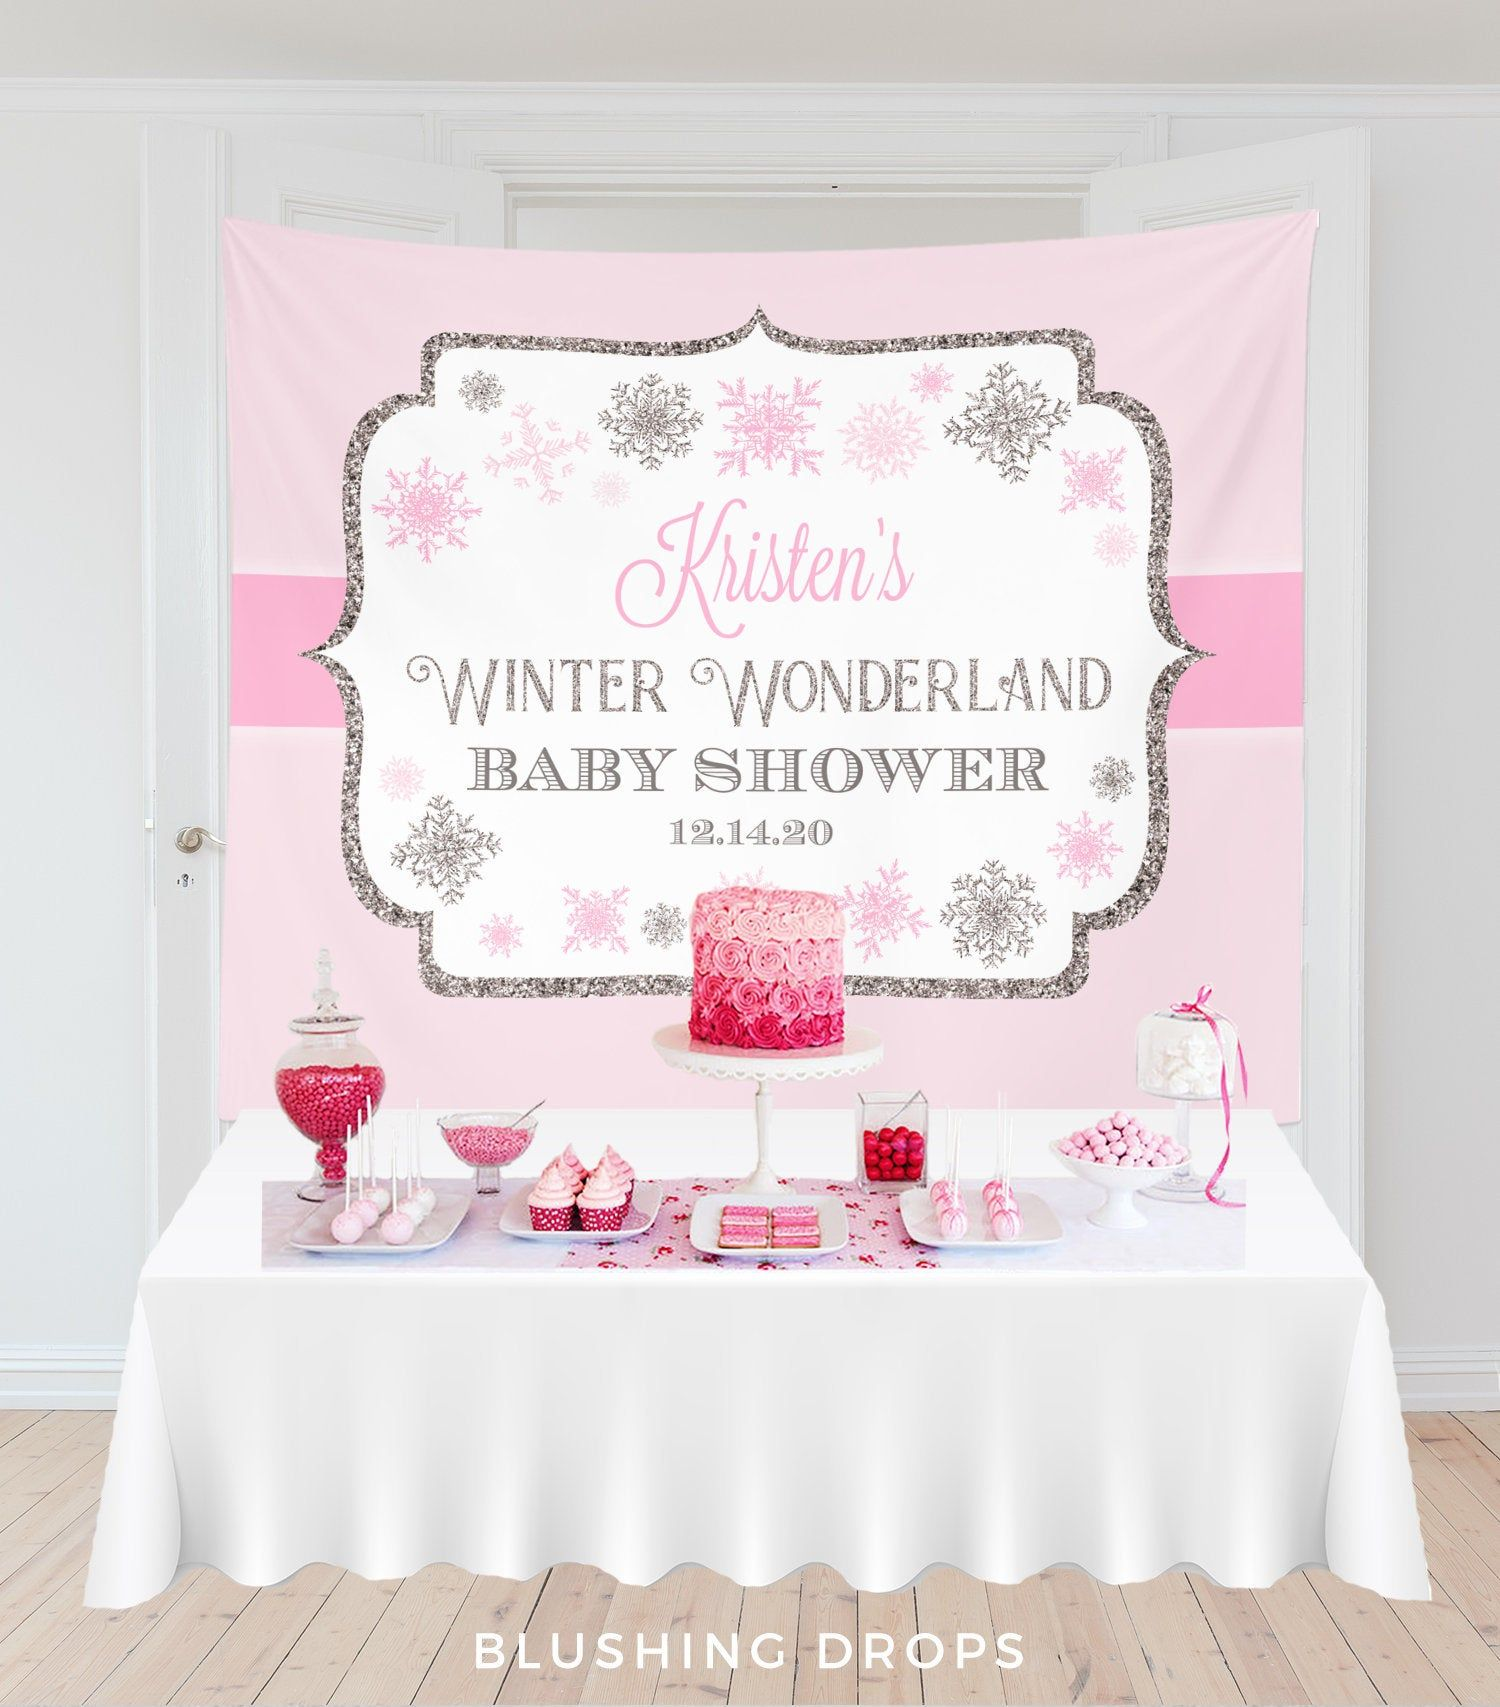 Winter Wonderland Backdrop, Winter Wonderland Baby Shower Decorations, Snowflake Baby Shower Banner, Girl Baby Shower Decor #winterwonderlandbabyshowerideas